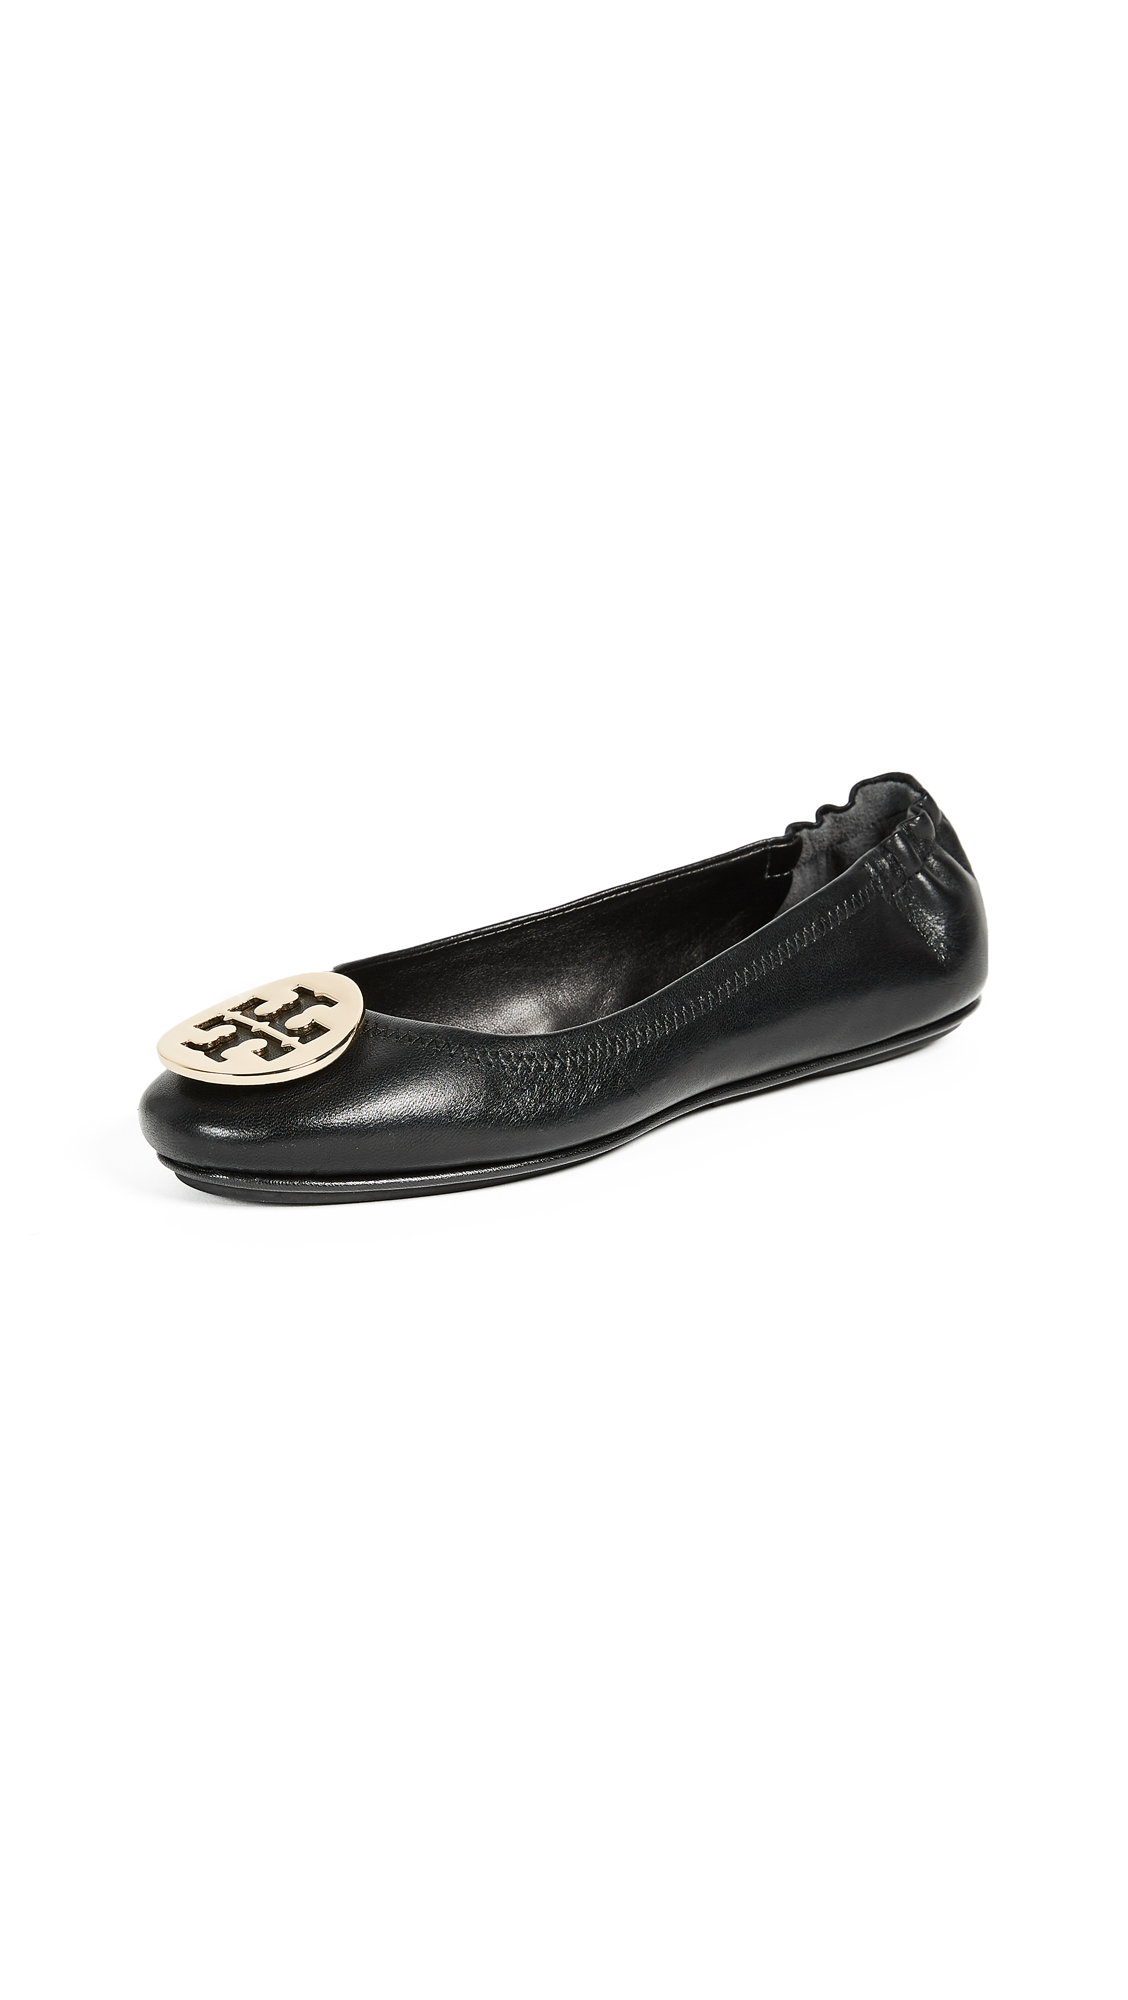 Tory Burch Minnie Travel Ballet Flats - Black/Gold